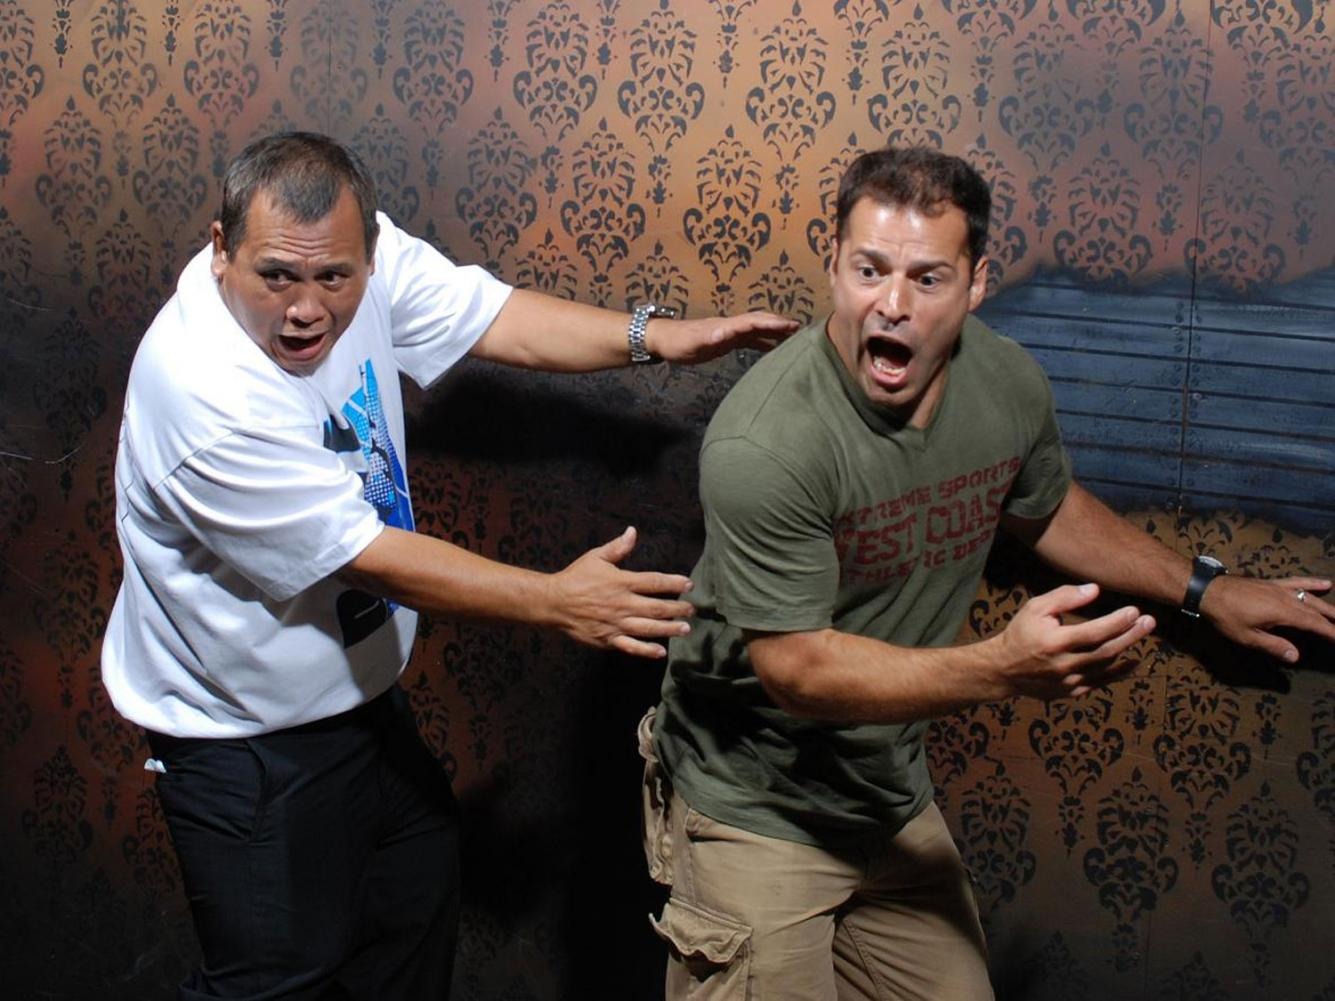 Nightmares Fear Factory Top 40 September 2013 pic01572